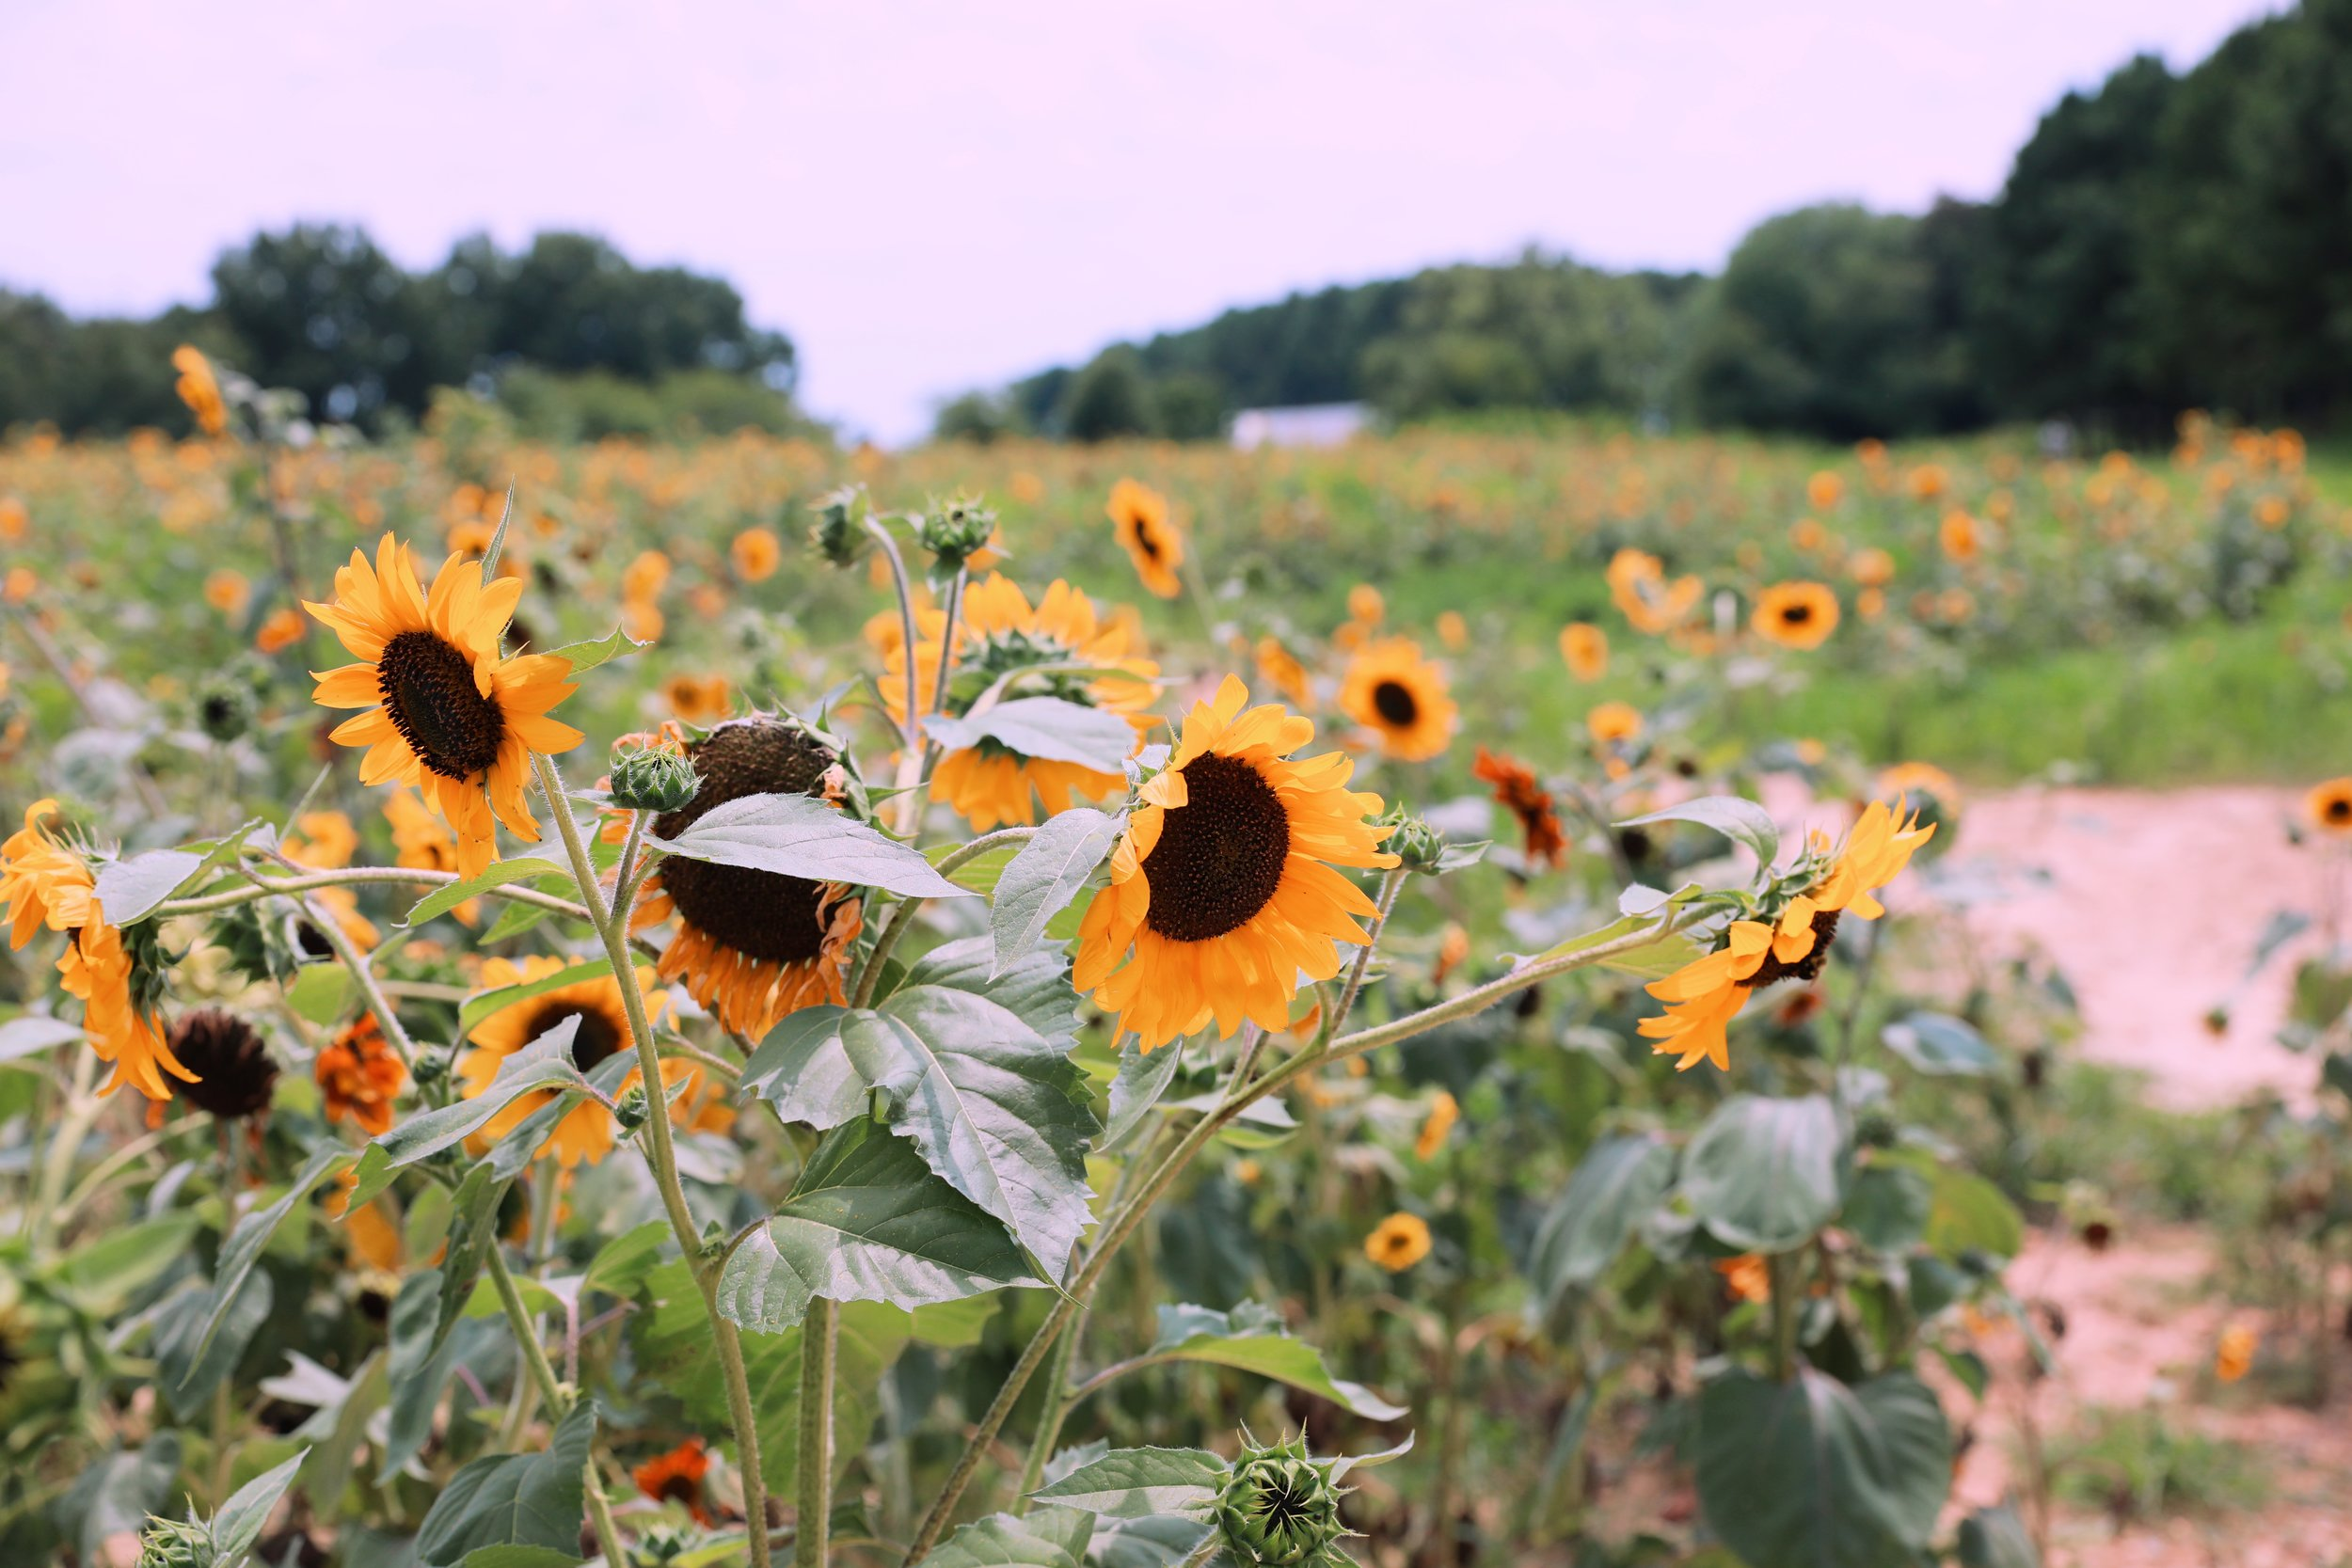 raleigh sunflower field.JPG